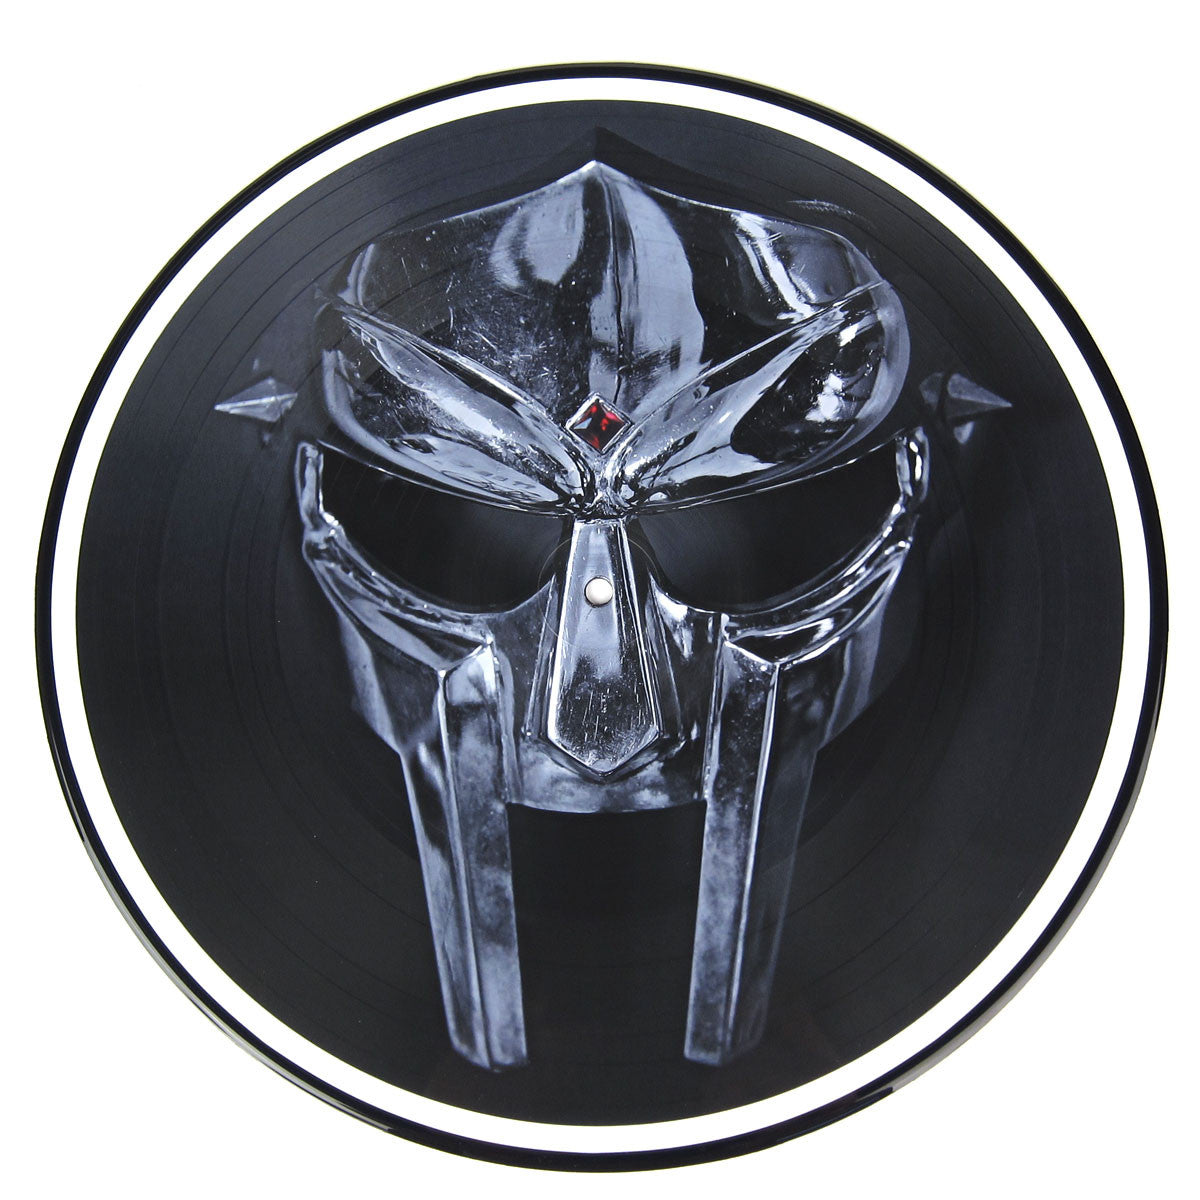 JJ Doom: Bookhead EP (Picture Disc, Free MP3) Vinyl LP 2